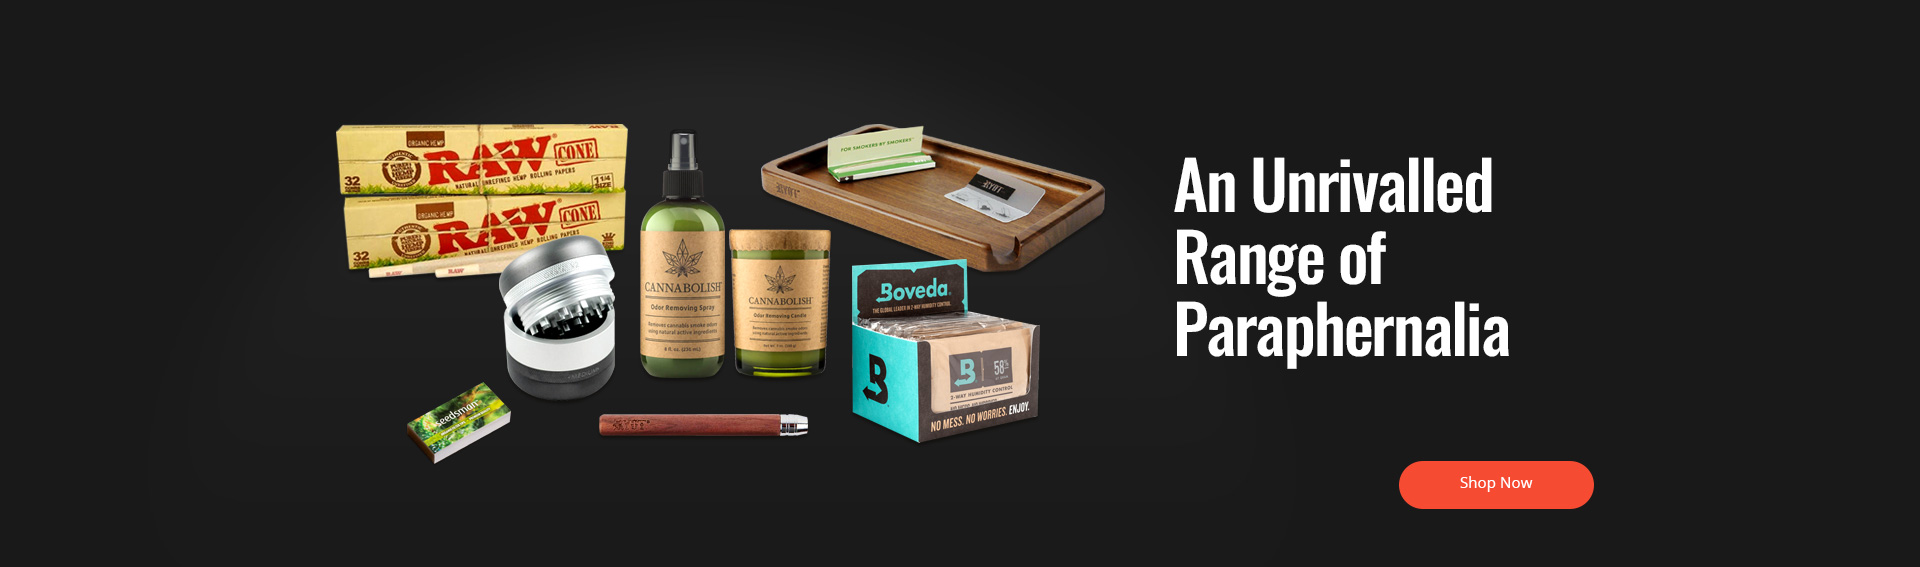 Homepage - An Unrivaled Range of Paraphernalia